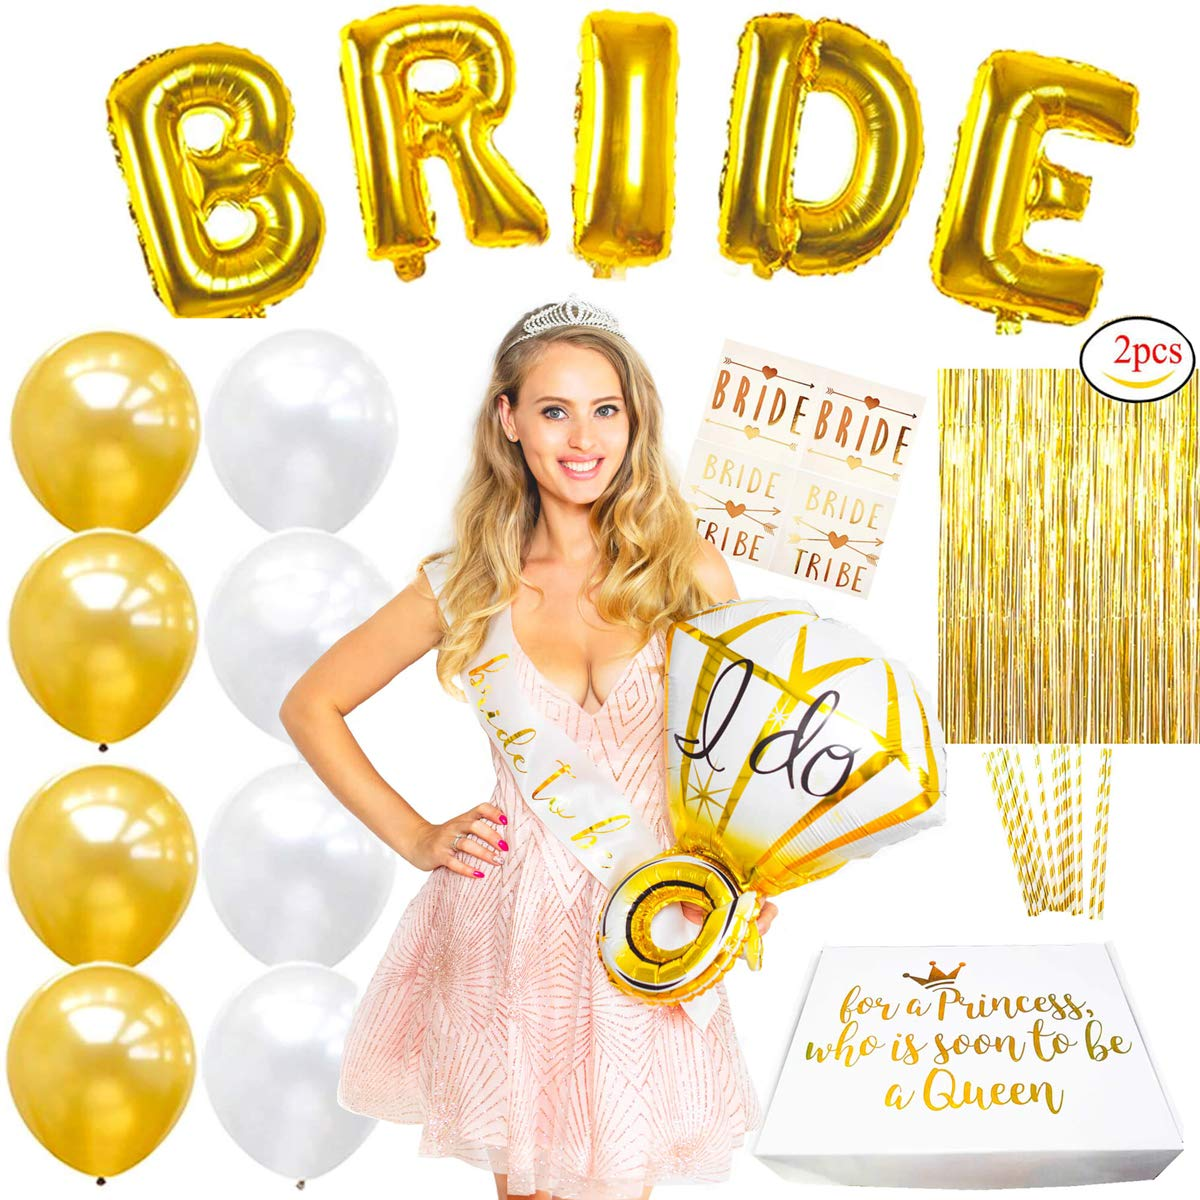 Premium Gold Bachelorette Party Decorations Bridal Shower Supplies Kit - for Classy Bride-To-Be - Tiara, Sash, Diamond Ring Balloon, Fringe Curtains, BRIDE Balloons, Latex Balloons, Tattoos, Straws